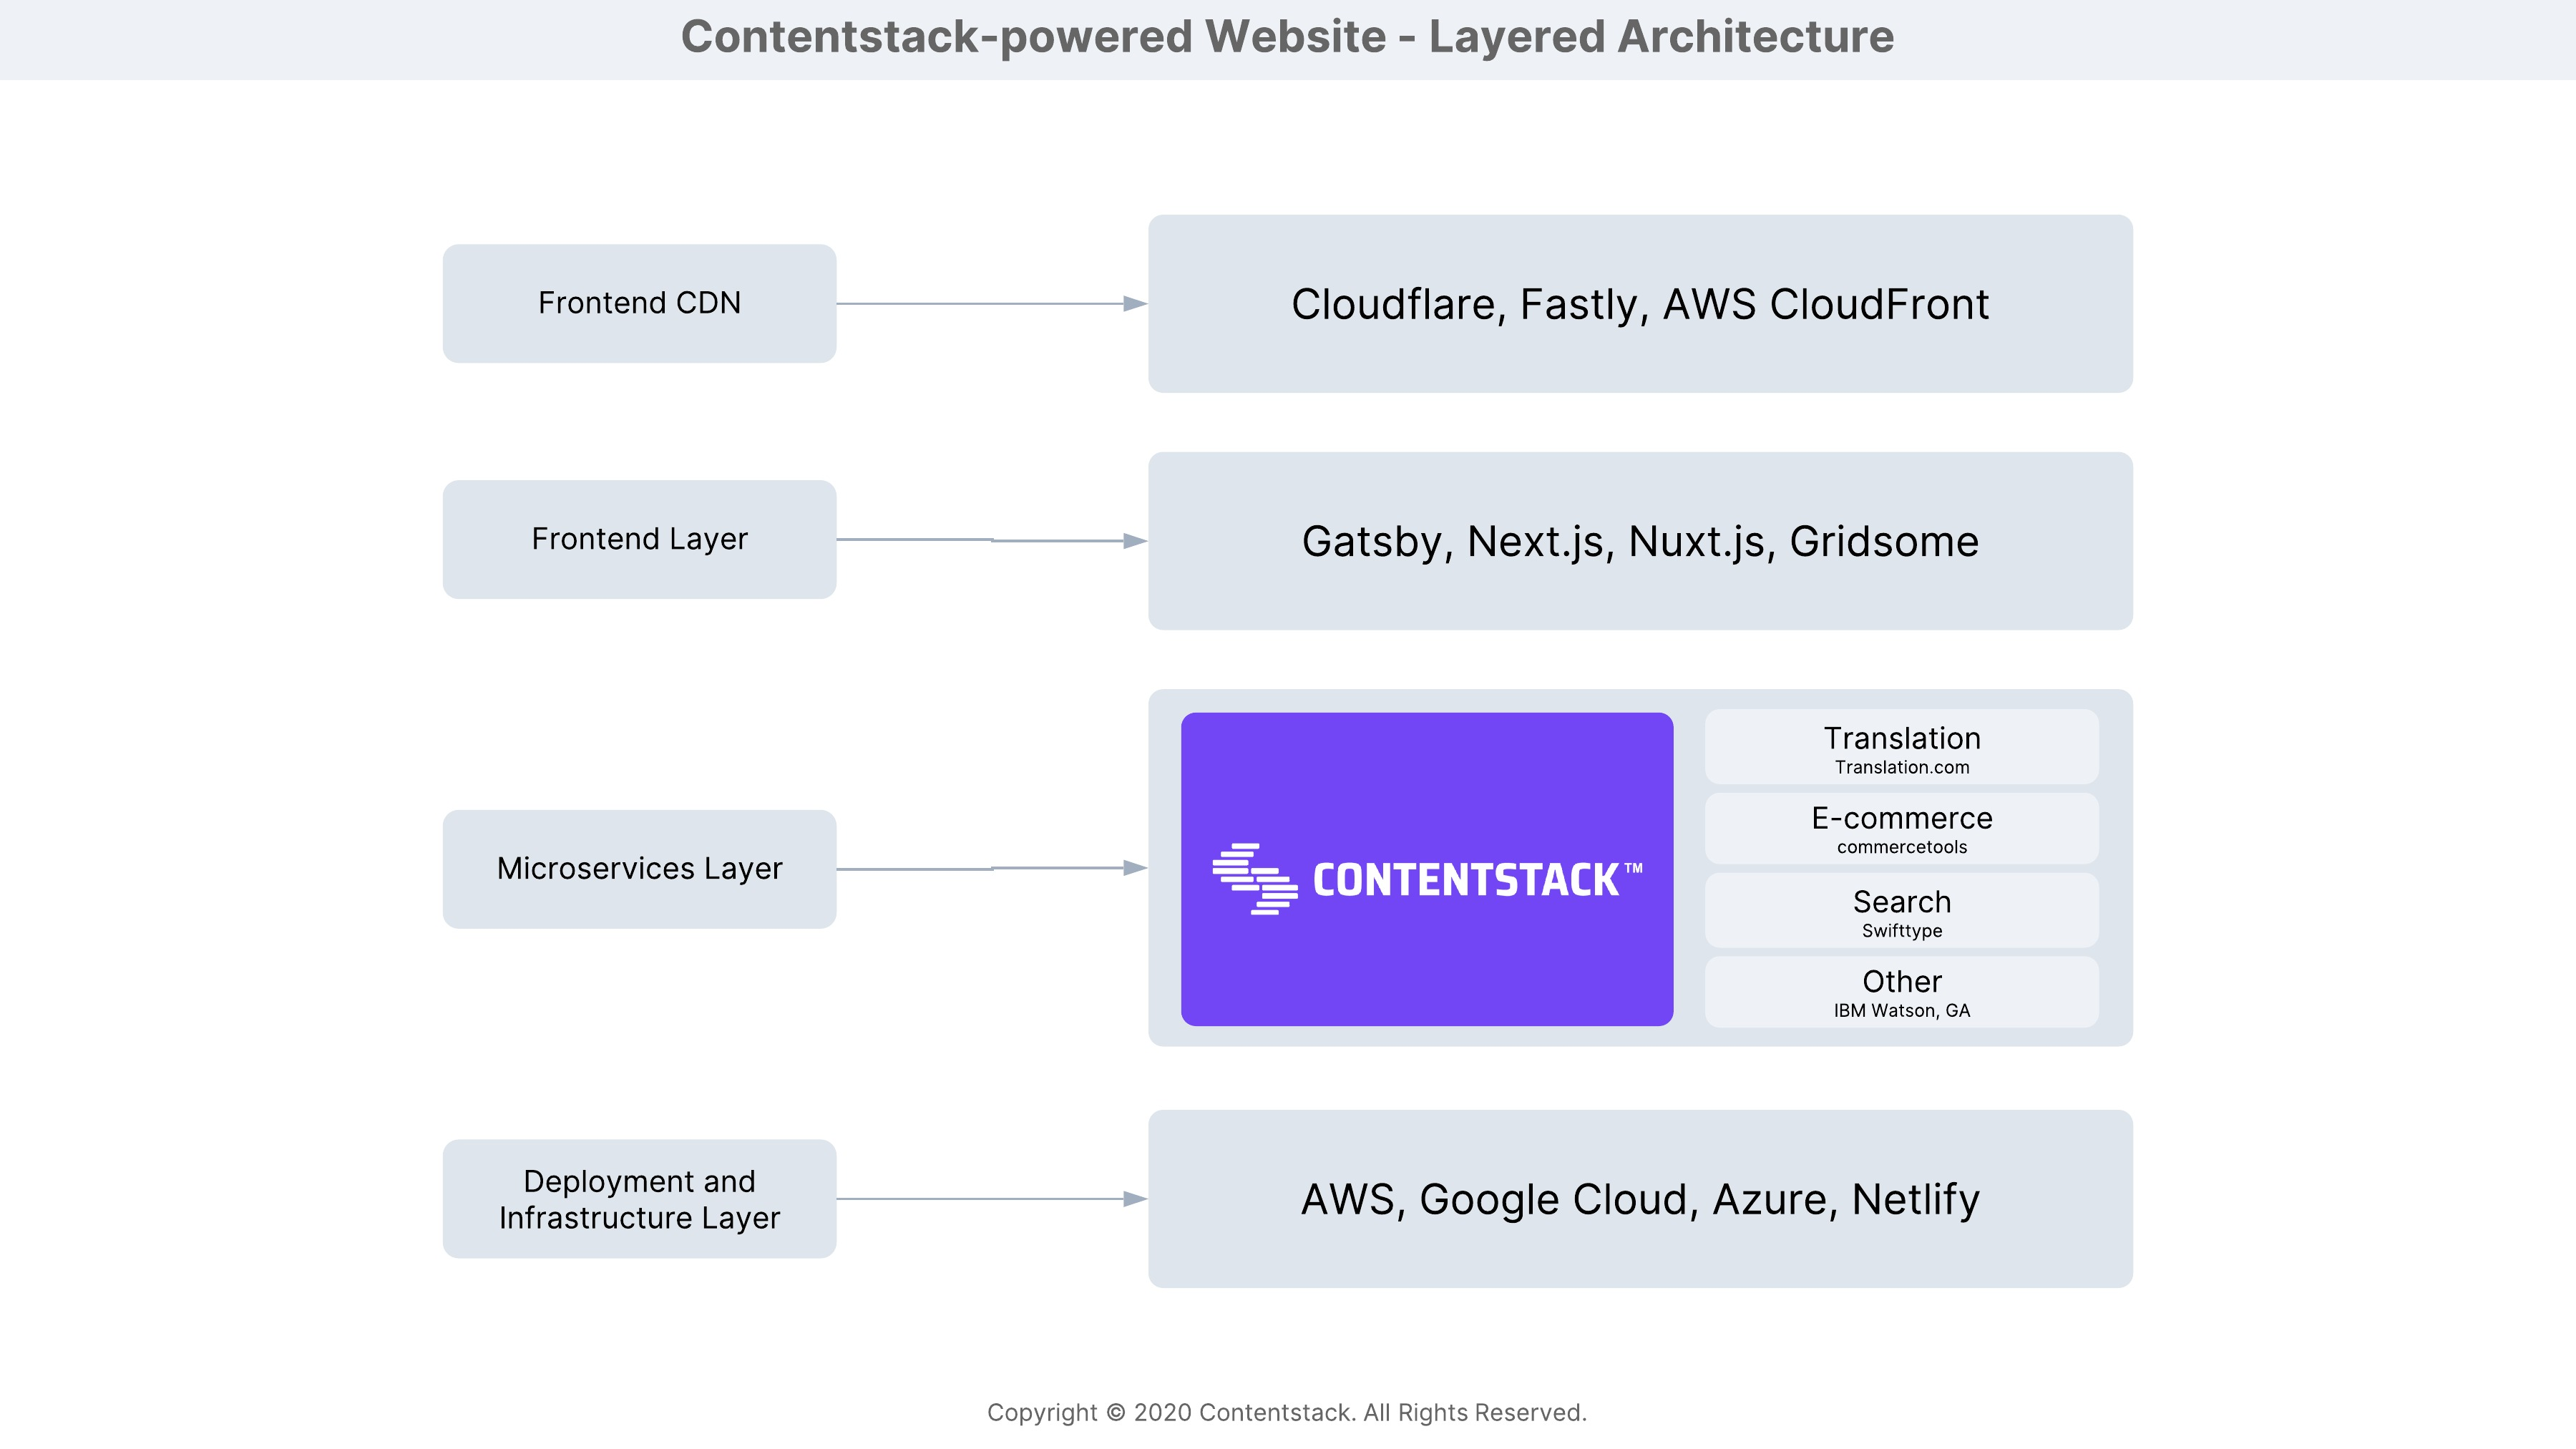 Contentstack-powered_Website_-_Layered_Architecture.jpeg